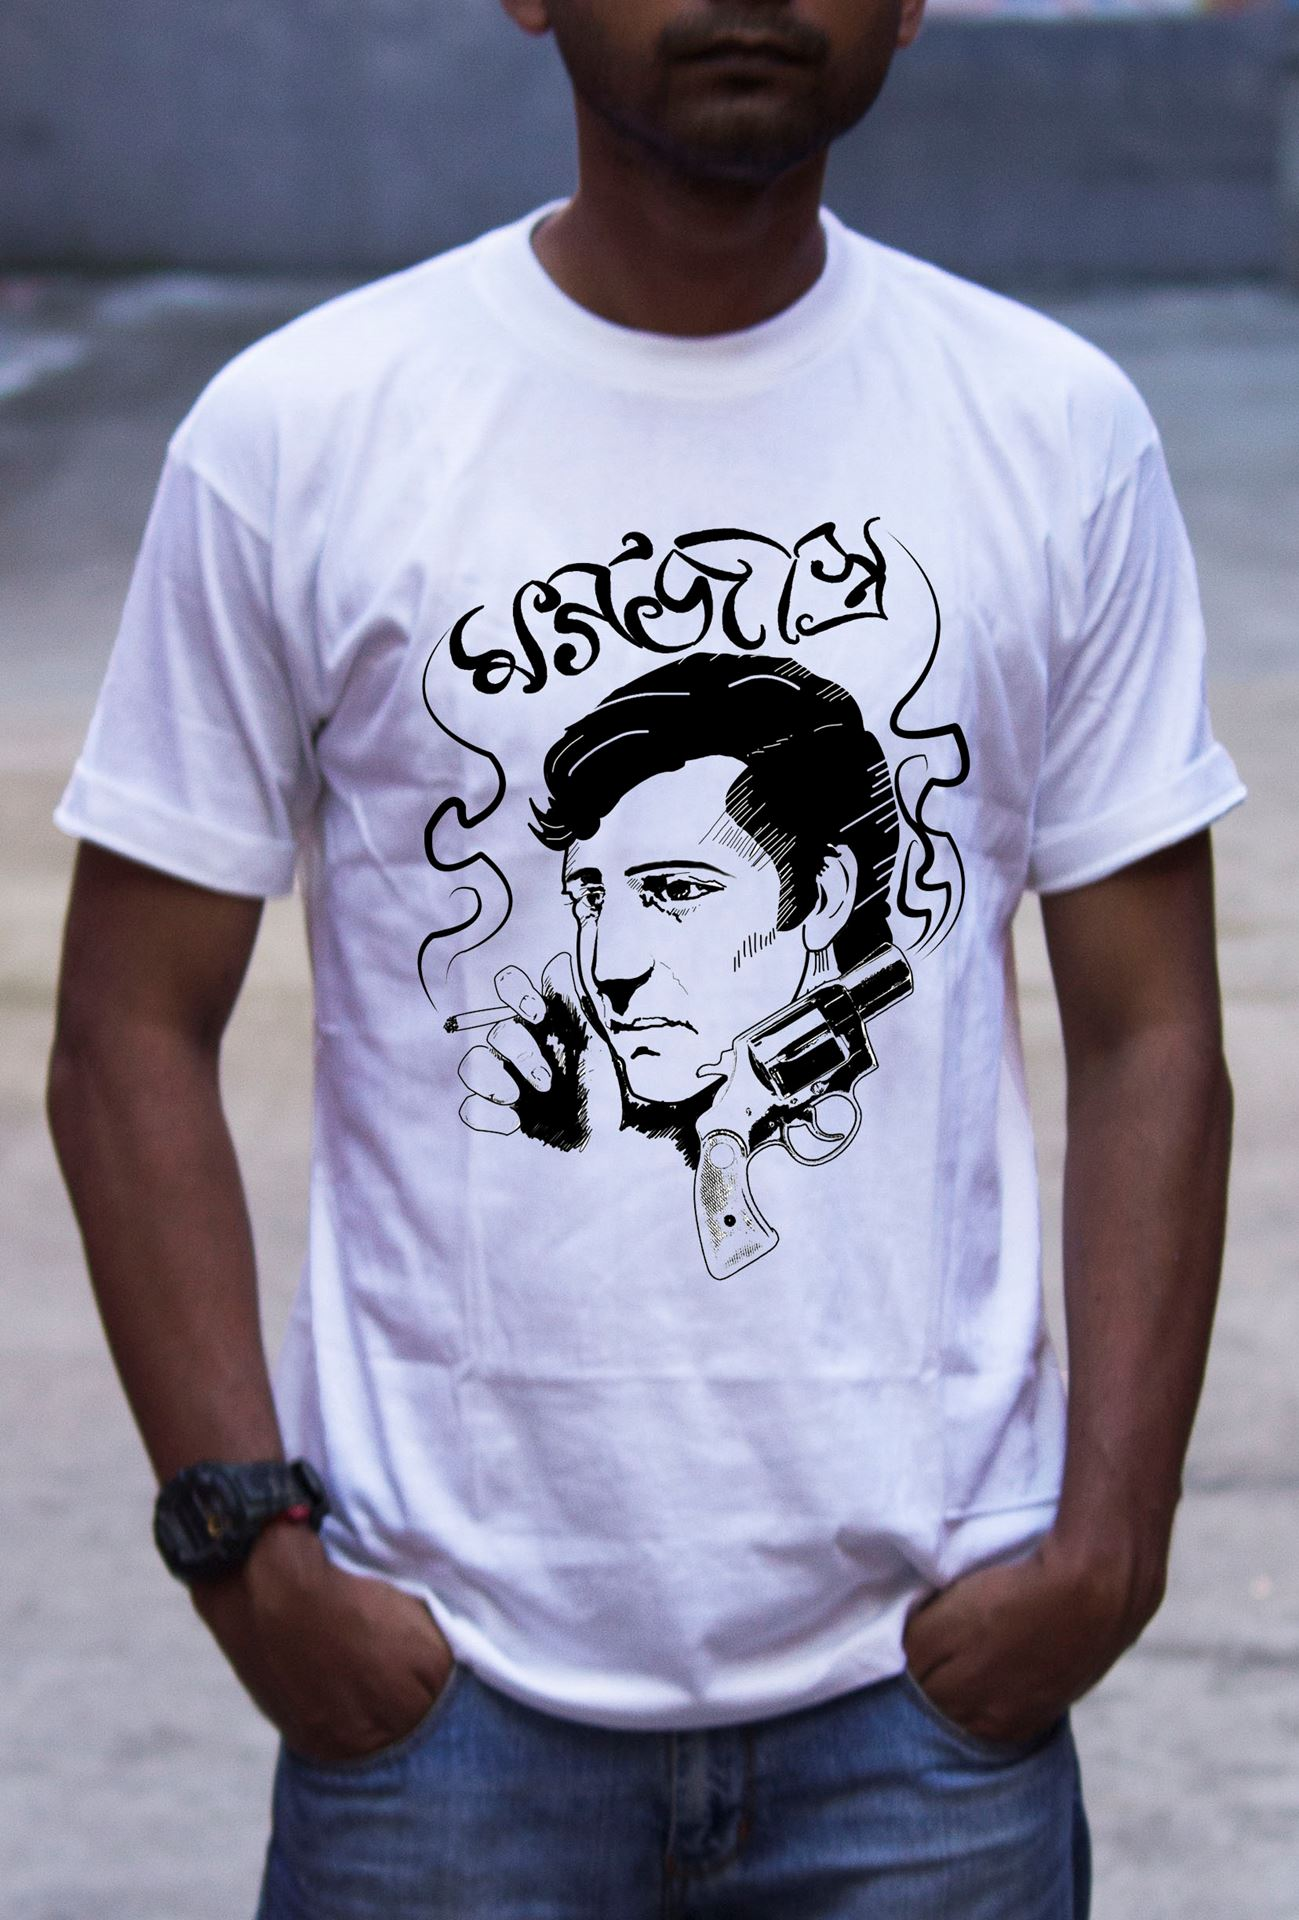 Buy Christian T Shirts Online India | Toffee Art